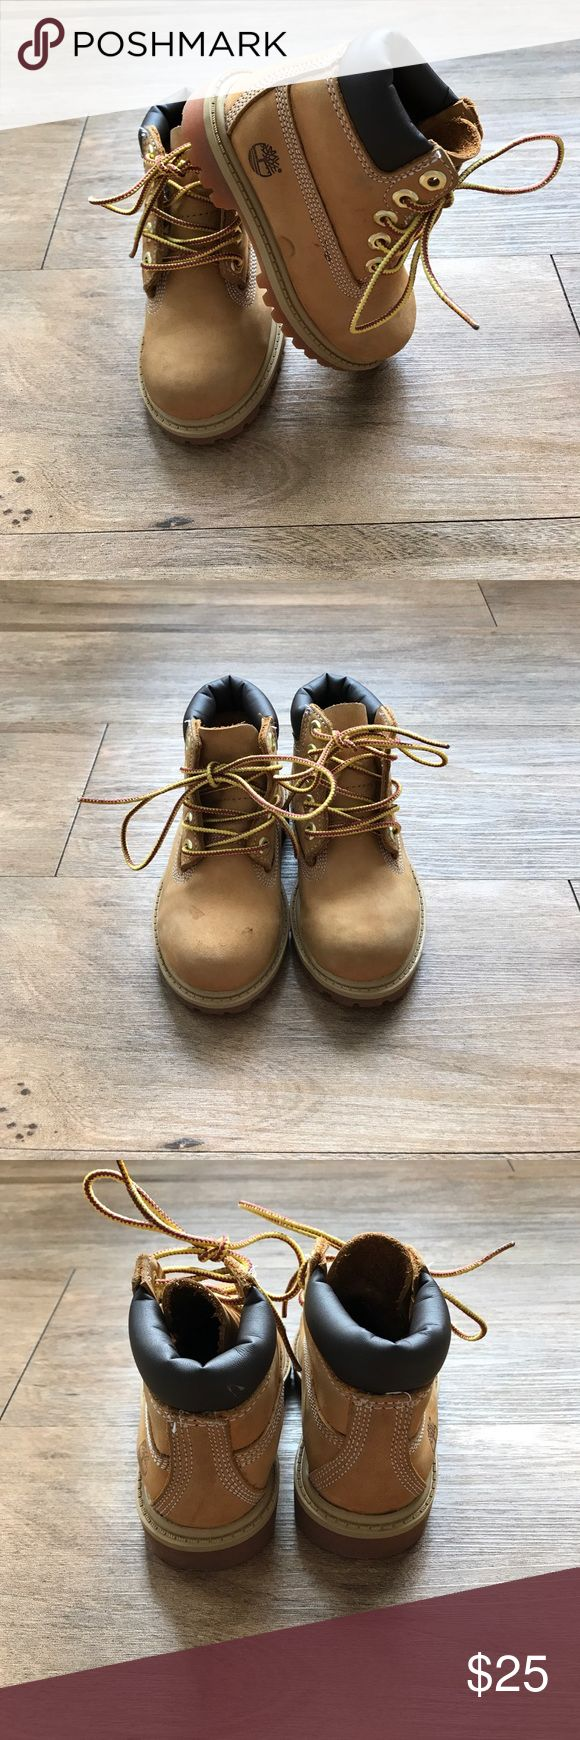 Baby Toddler Timberland Boots Timberlands Timberland Shoes Boots